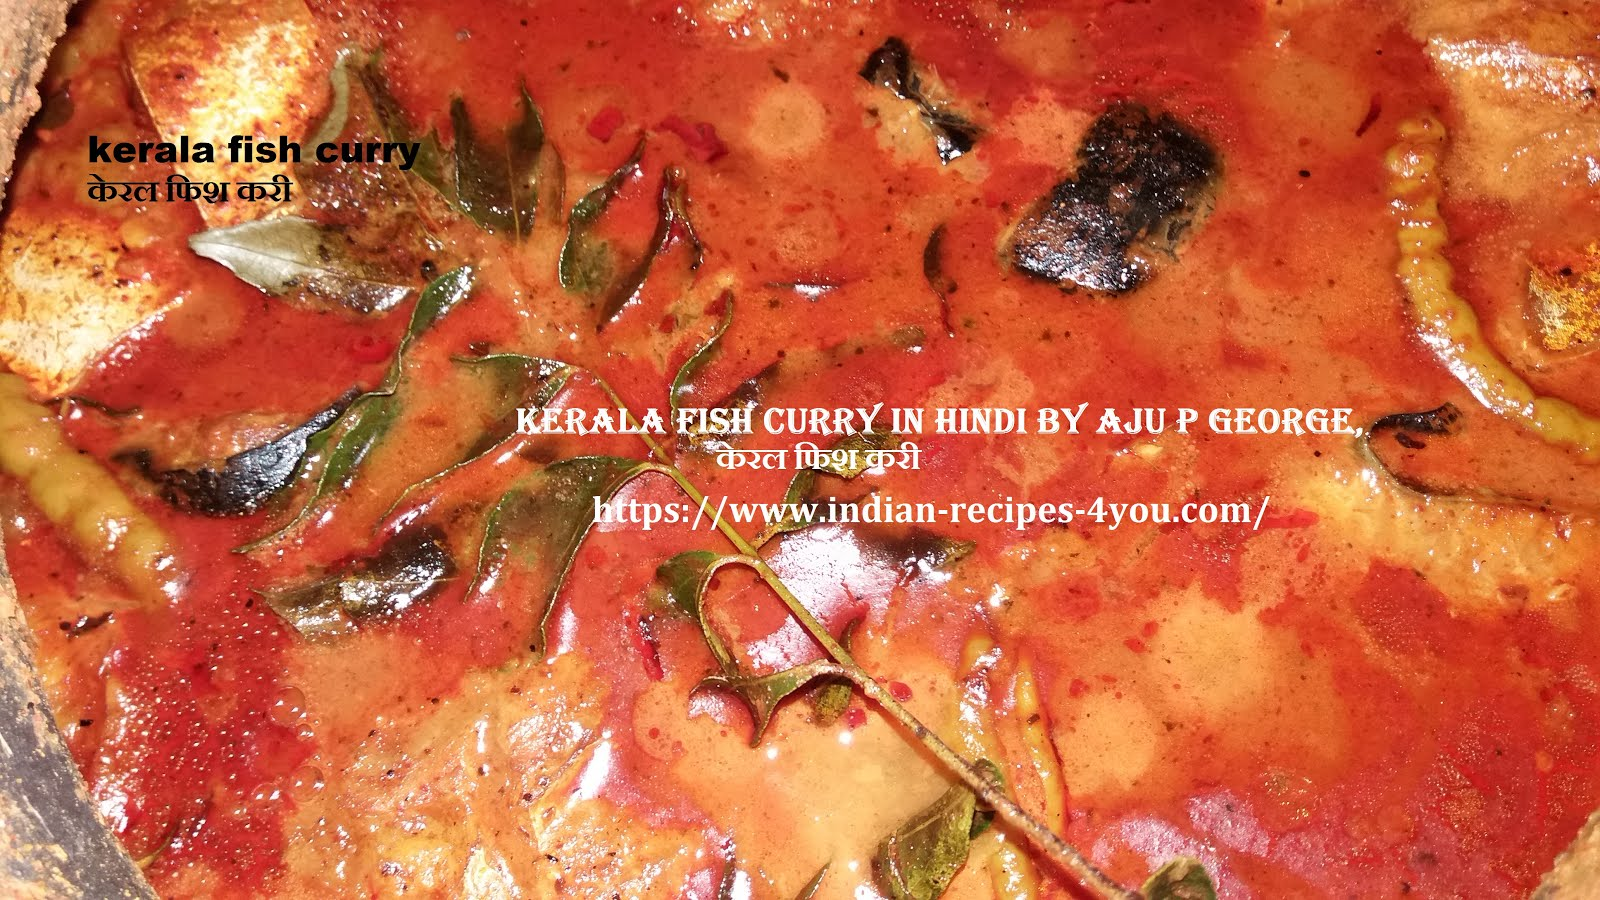 kerala fish curry with kudampuli